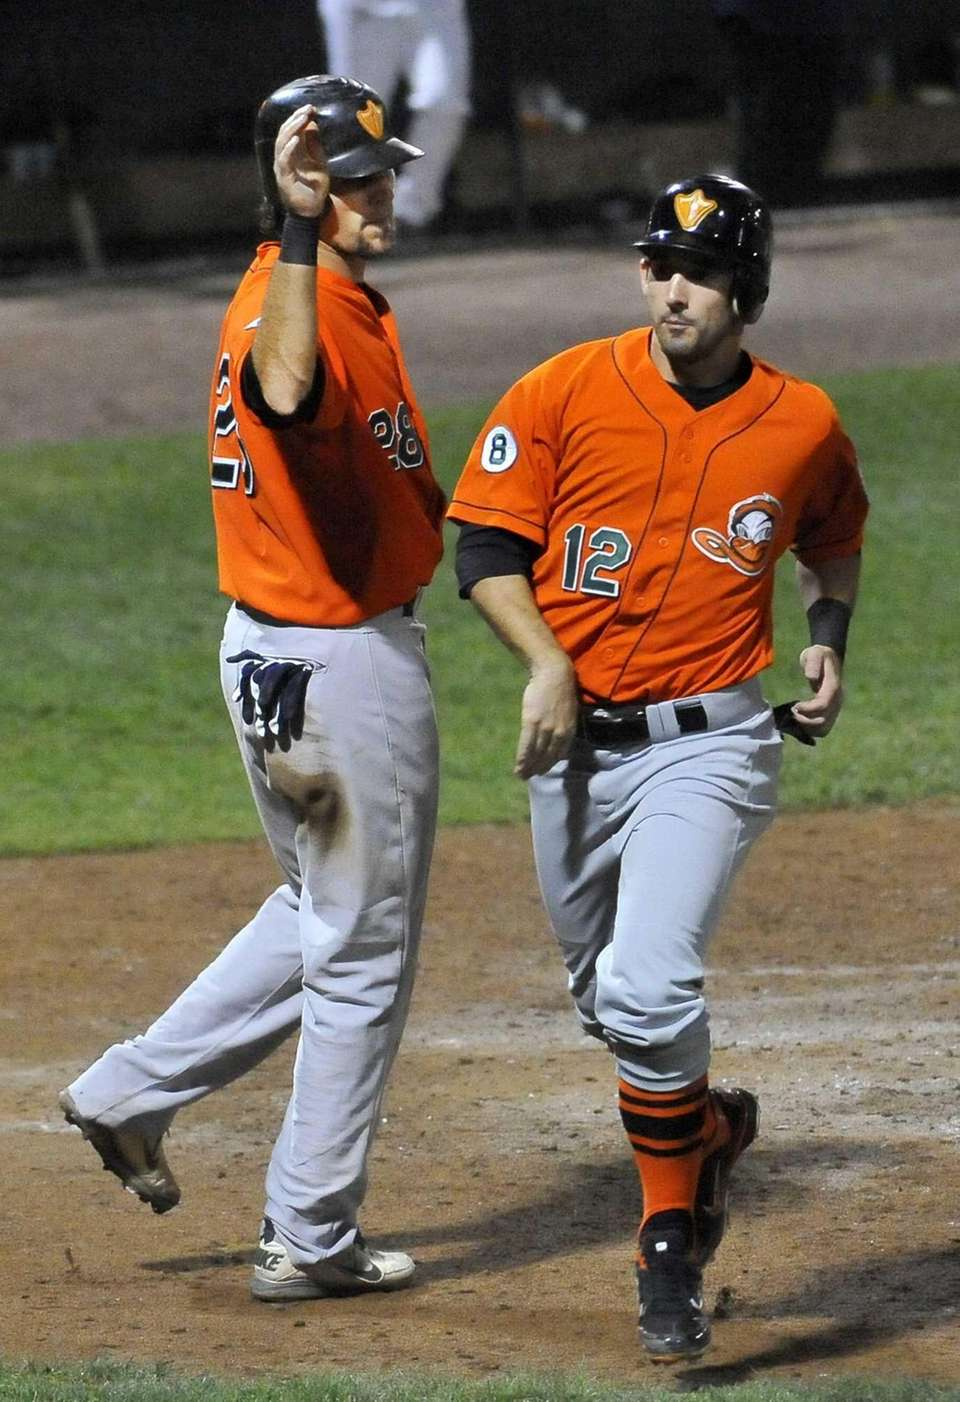 The Long Island Ducks' Mitch Canham is greeted